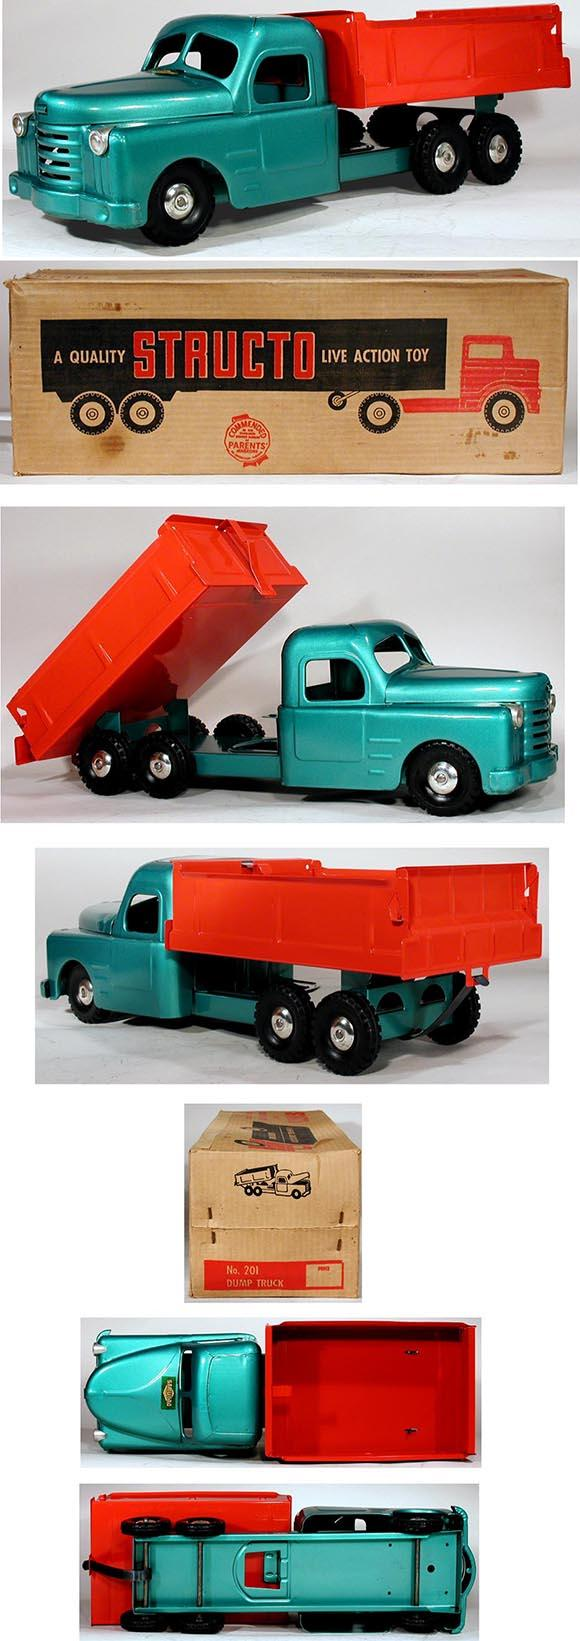 1951 Structo, #201 Dump Truck in Original Box